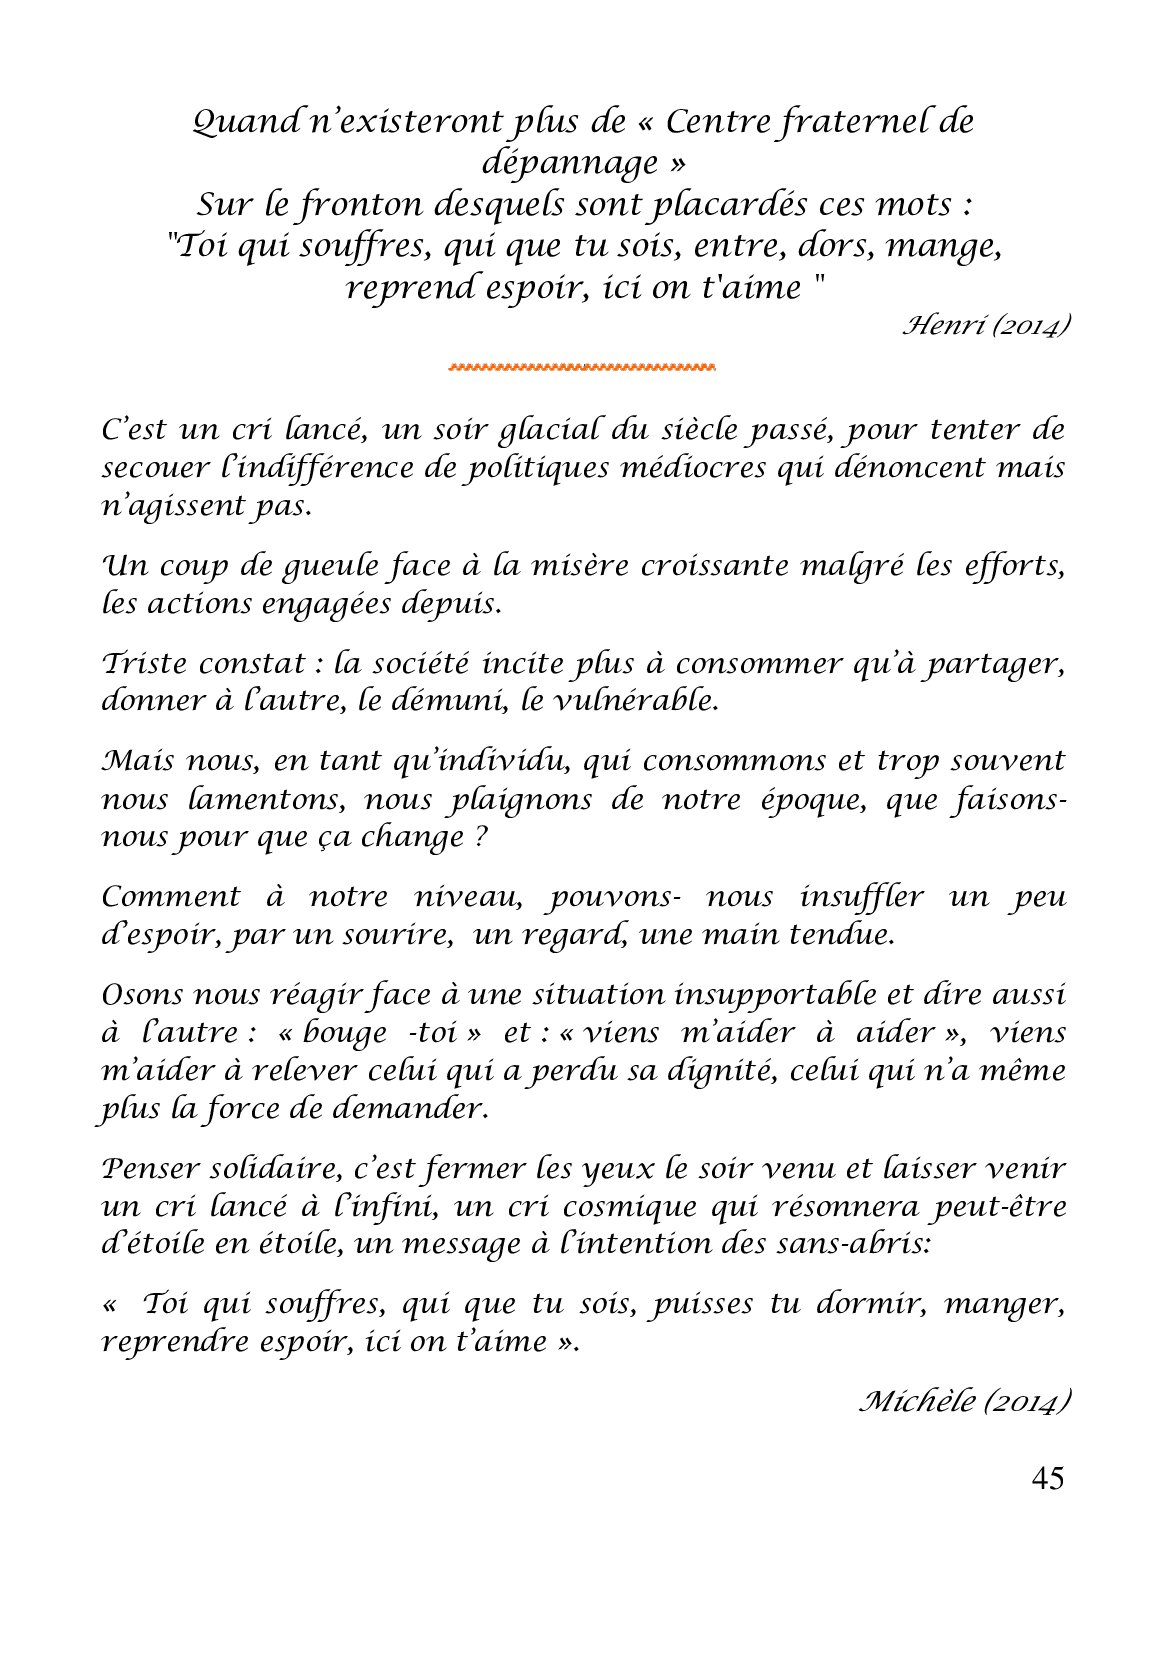 recueil_version_blog_045.jpg